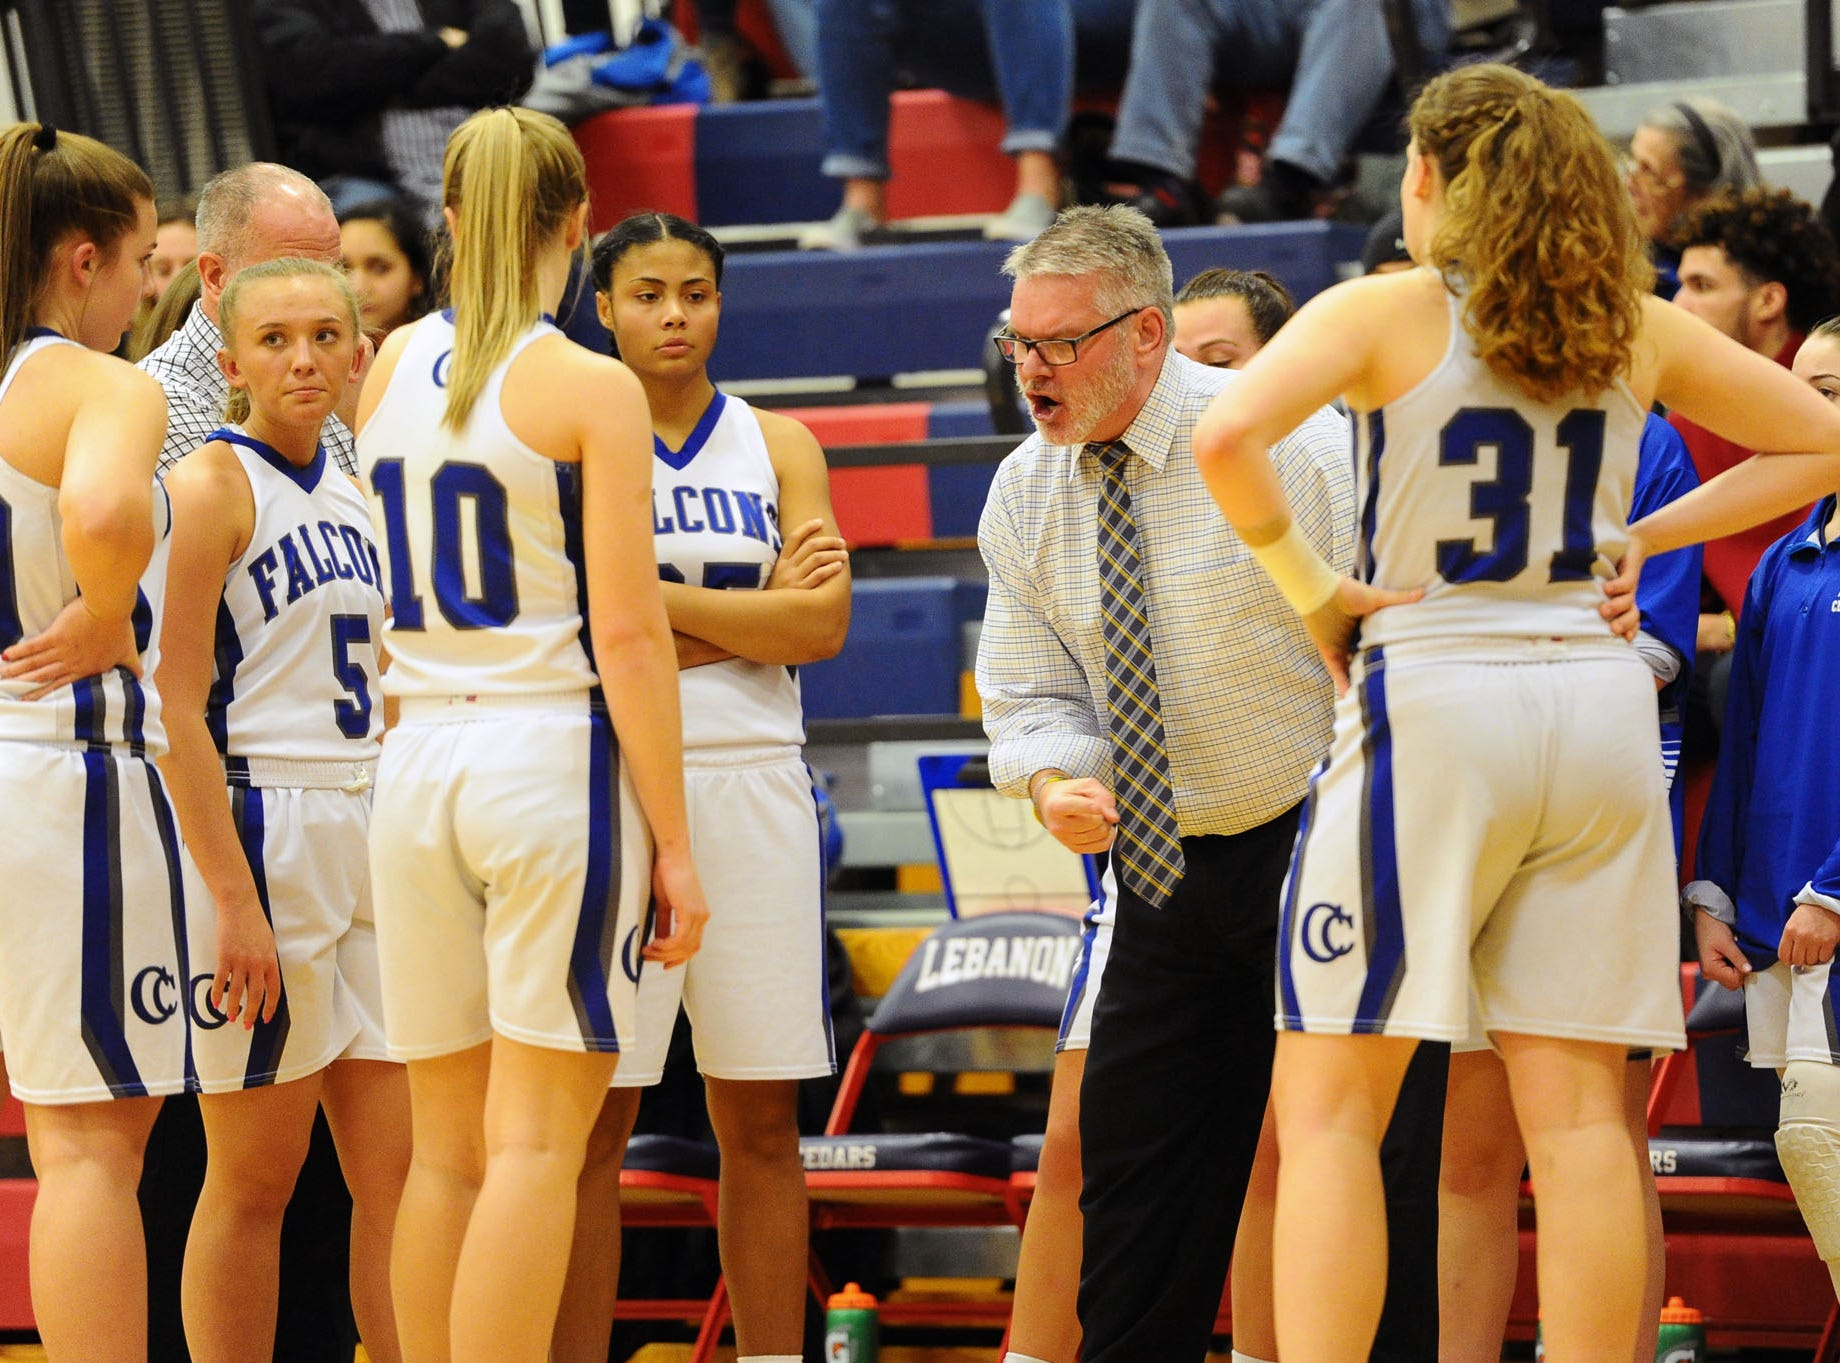 Cedar Crest head coach Jim Donmoyer tries to get things in-order during a time out.